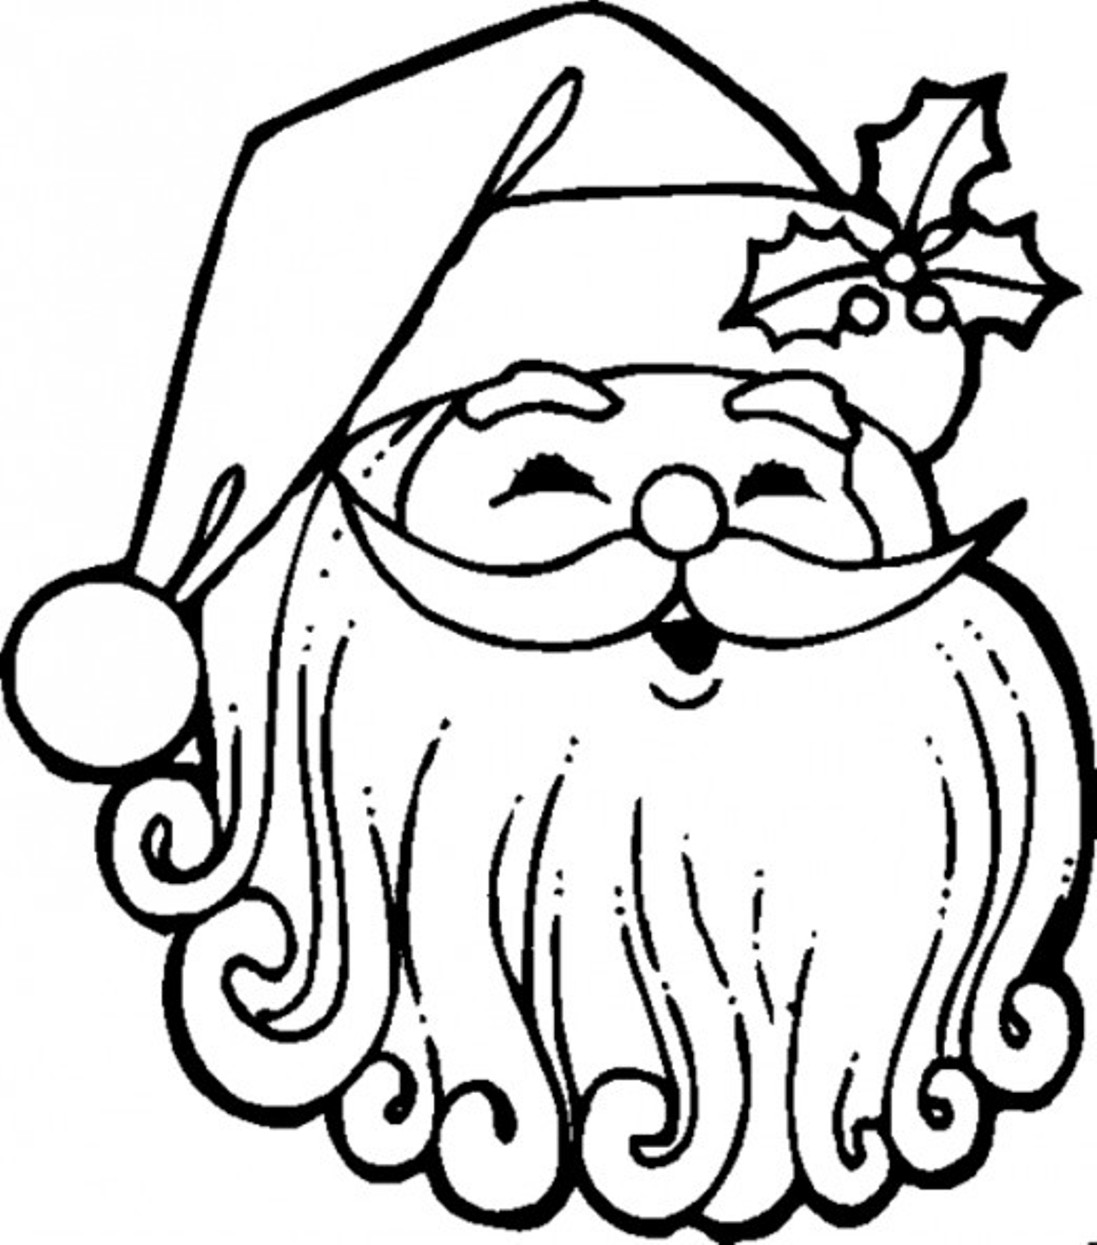 1097x1245 easy santa claus coloring merry christmas amp happy new year arts